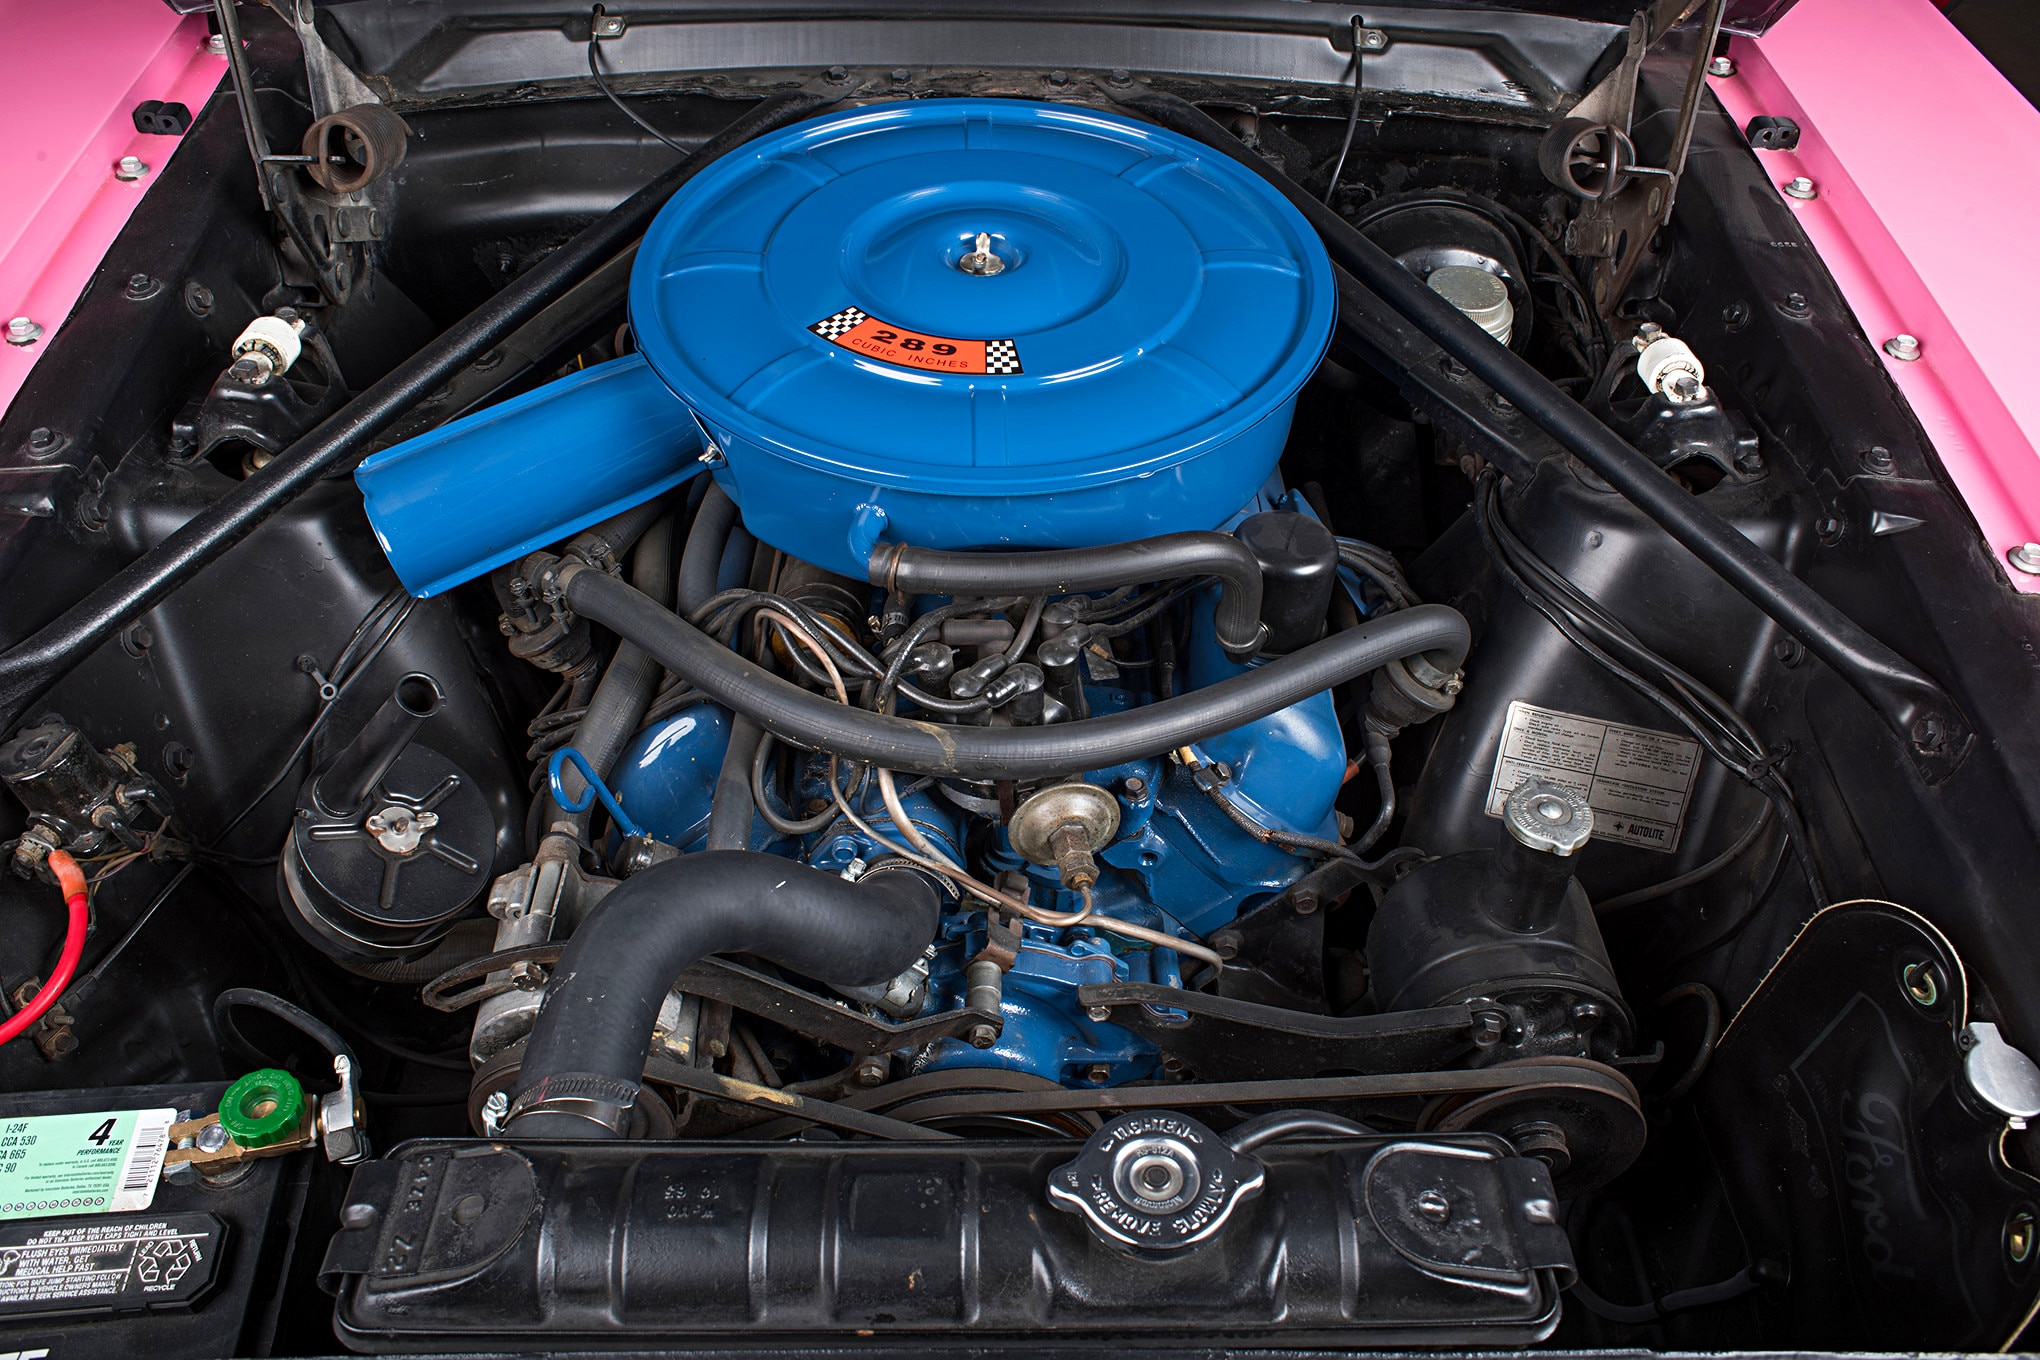 Sonny Cher Ford Mustang Engine